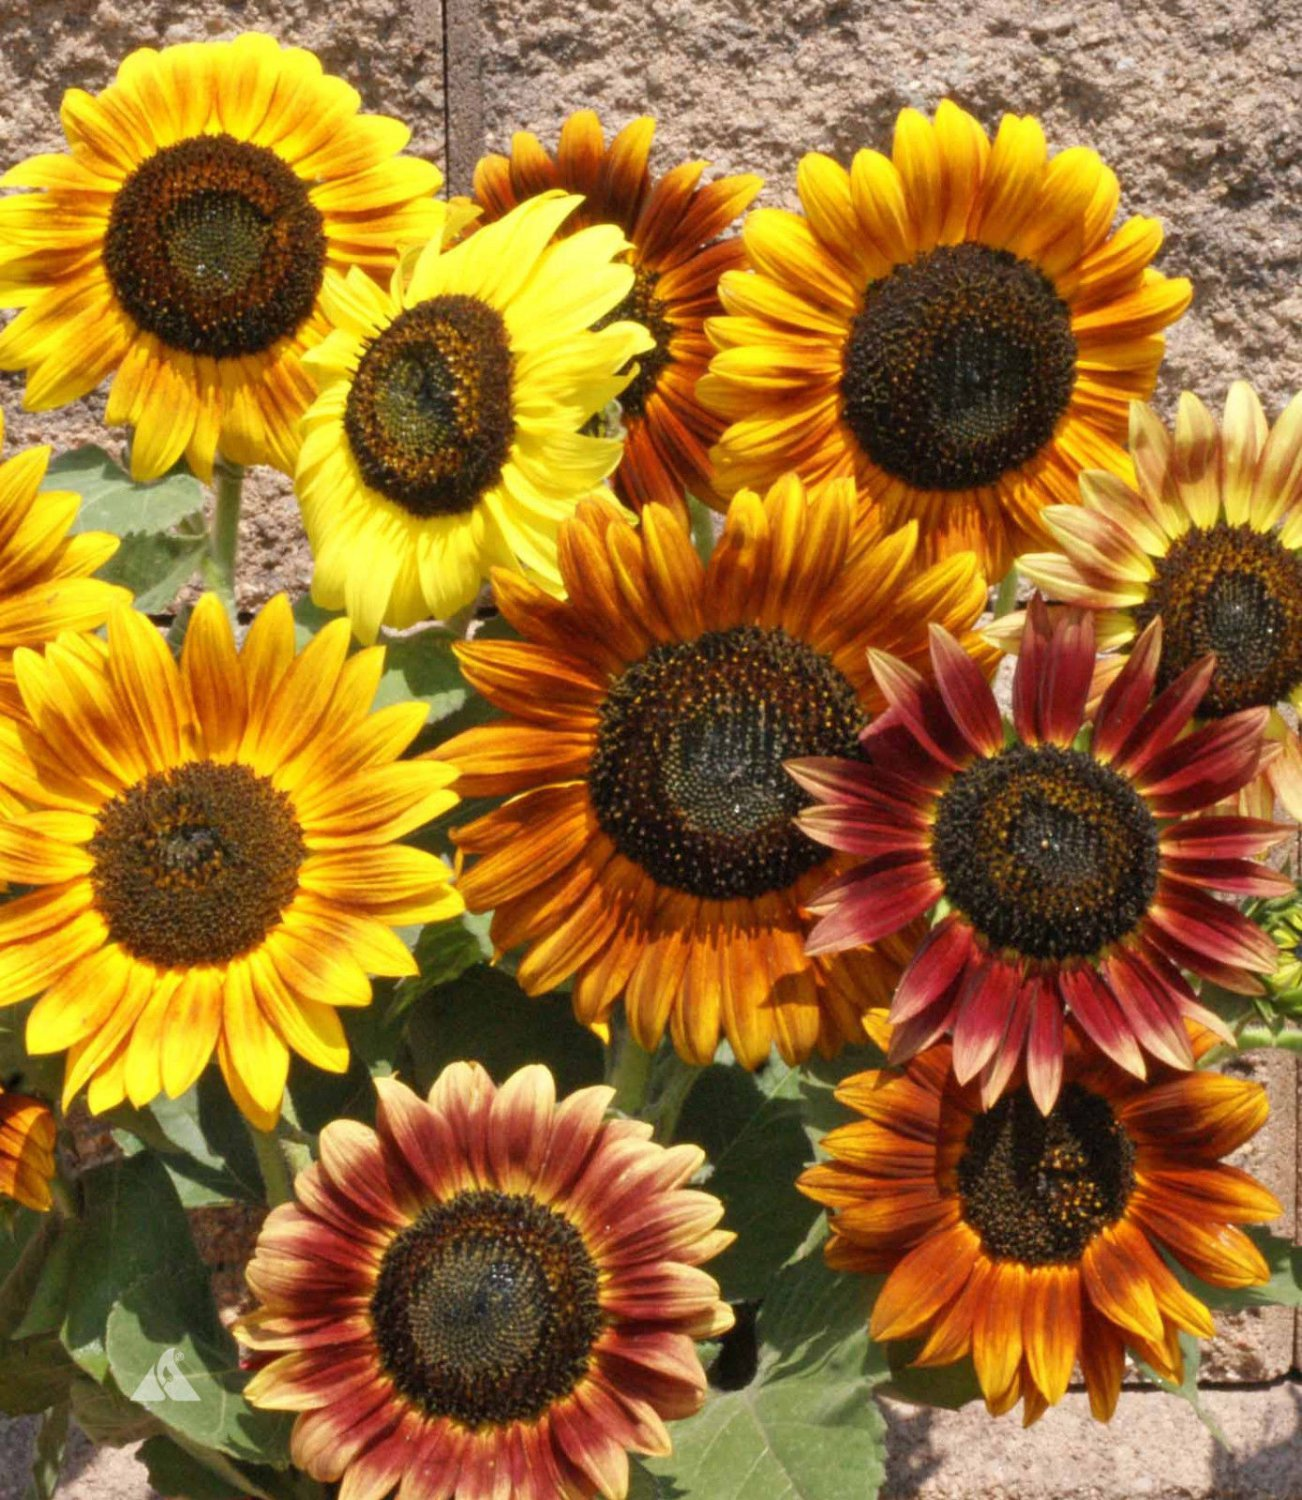 Sunflower Autumn Beauty Mixed Color 100 seeds * Cut Flower * *SHIPPING FROM US* CombSH J24